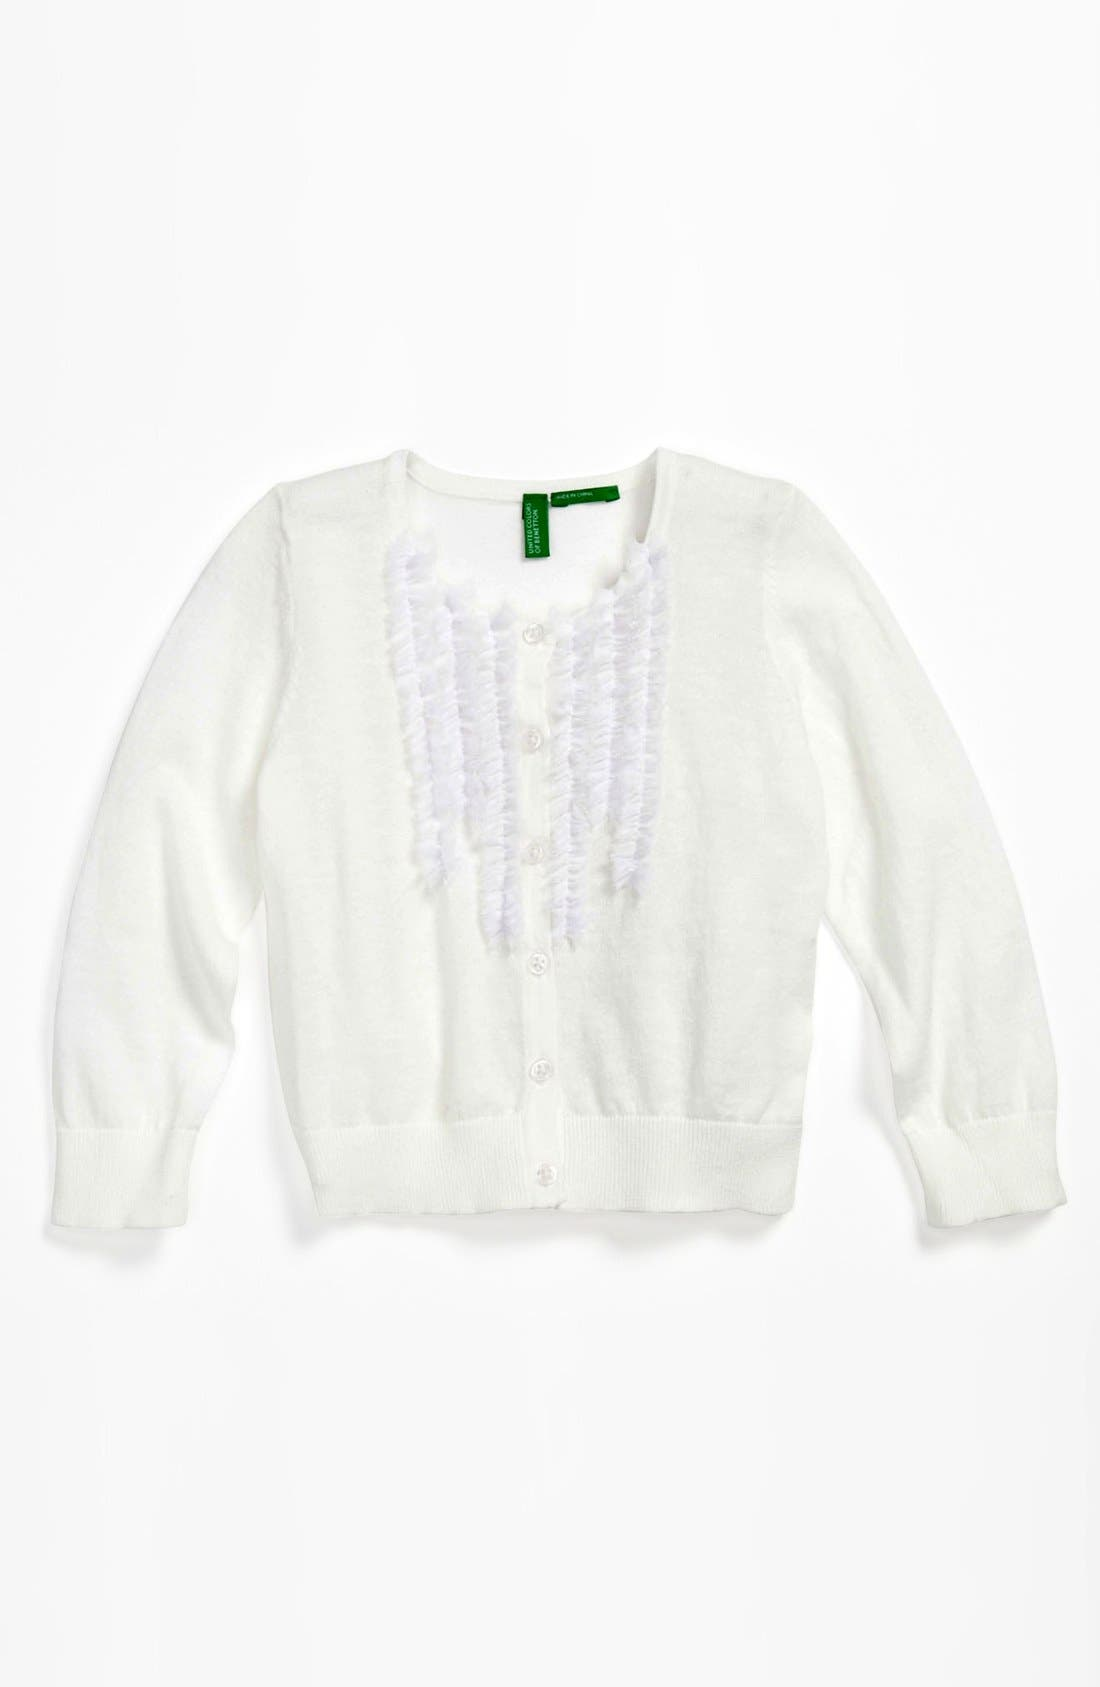 Alternate Image 1 Selected - United Colors of Benetton Kids Cardigan (Toddler)